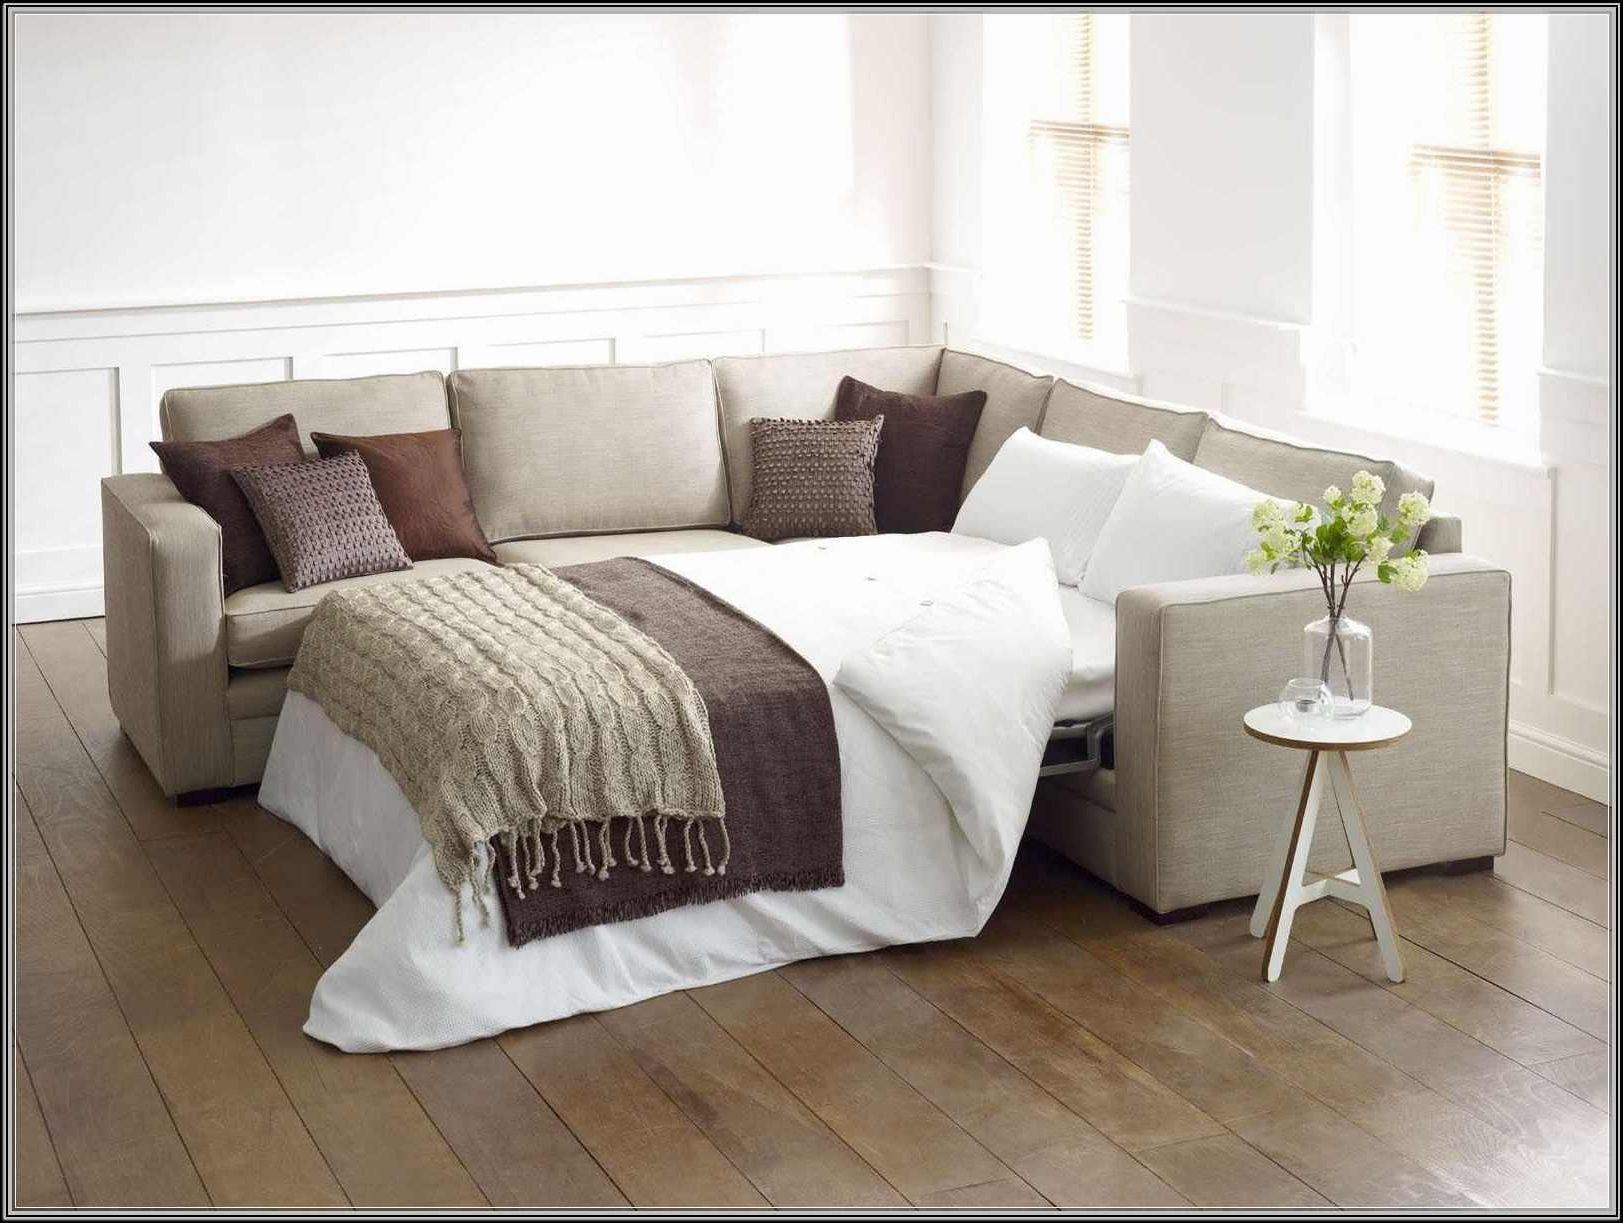 L Shaped Sectional Sleeper Sofas Pertaining To Latest Wonderful L Shaped Sleeper Sofa Stunning Cheap Furniture Ideas (View 9 of 15)